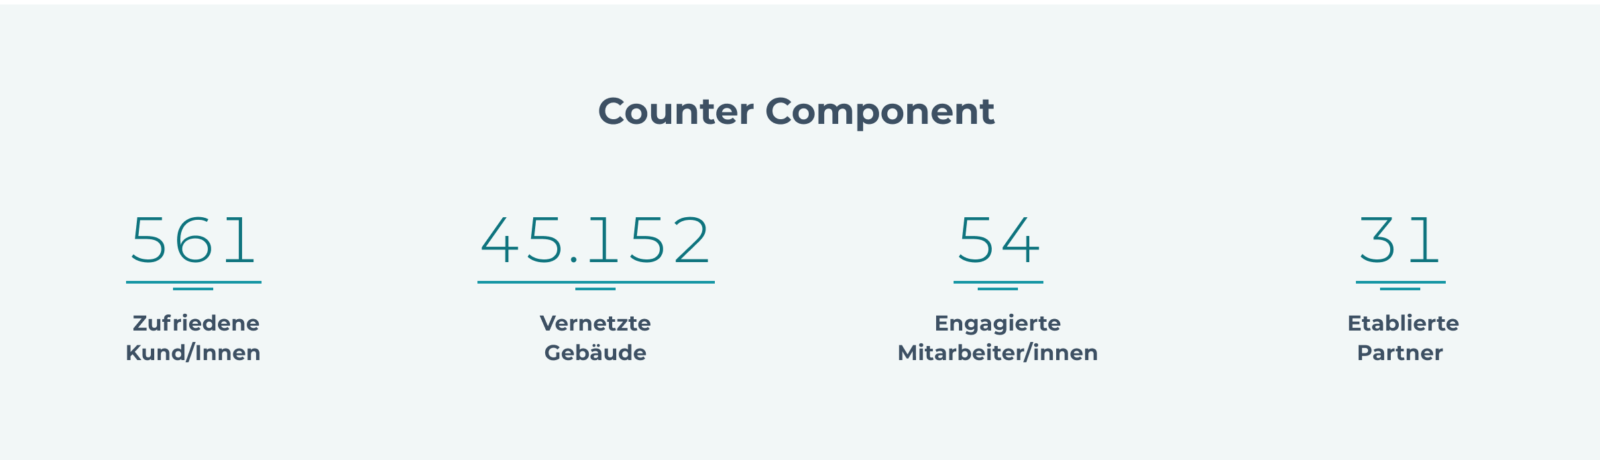 Design for a counter component using tabular figures. When animated the numbers will not jump around since they all have the same width.